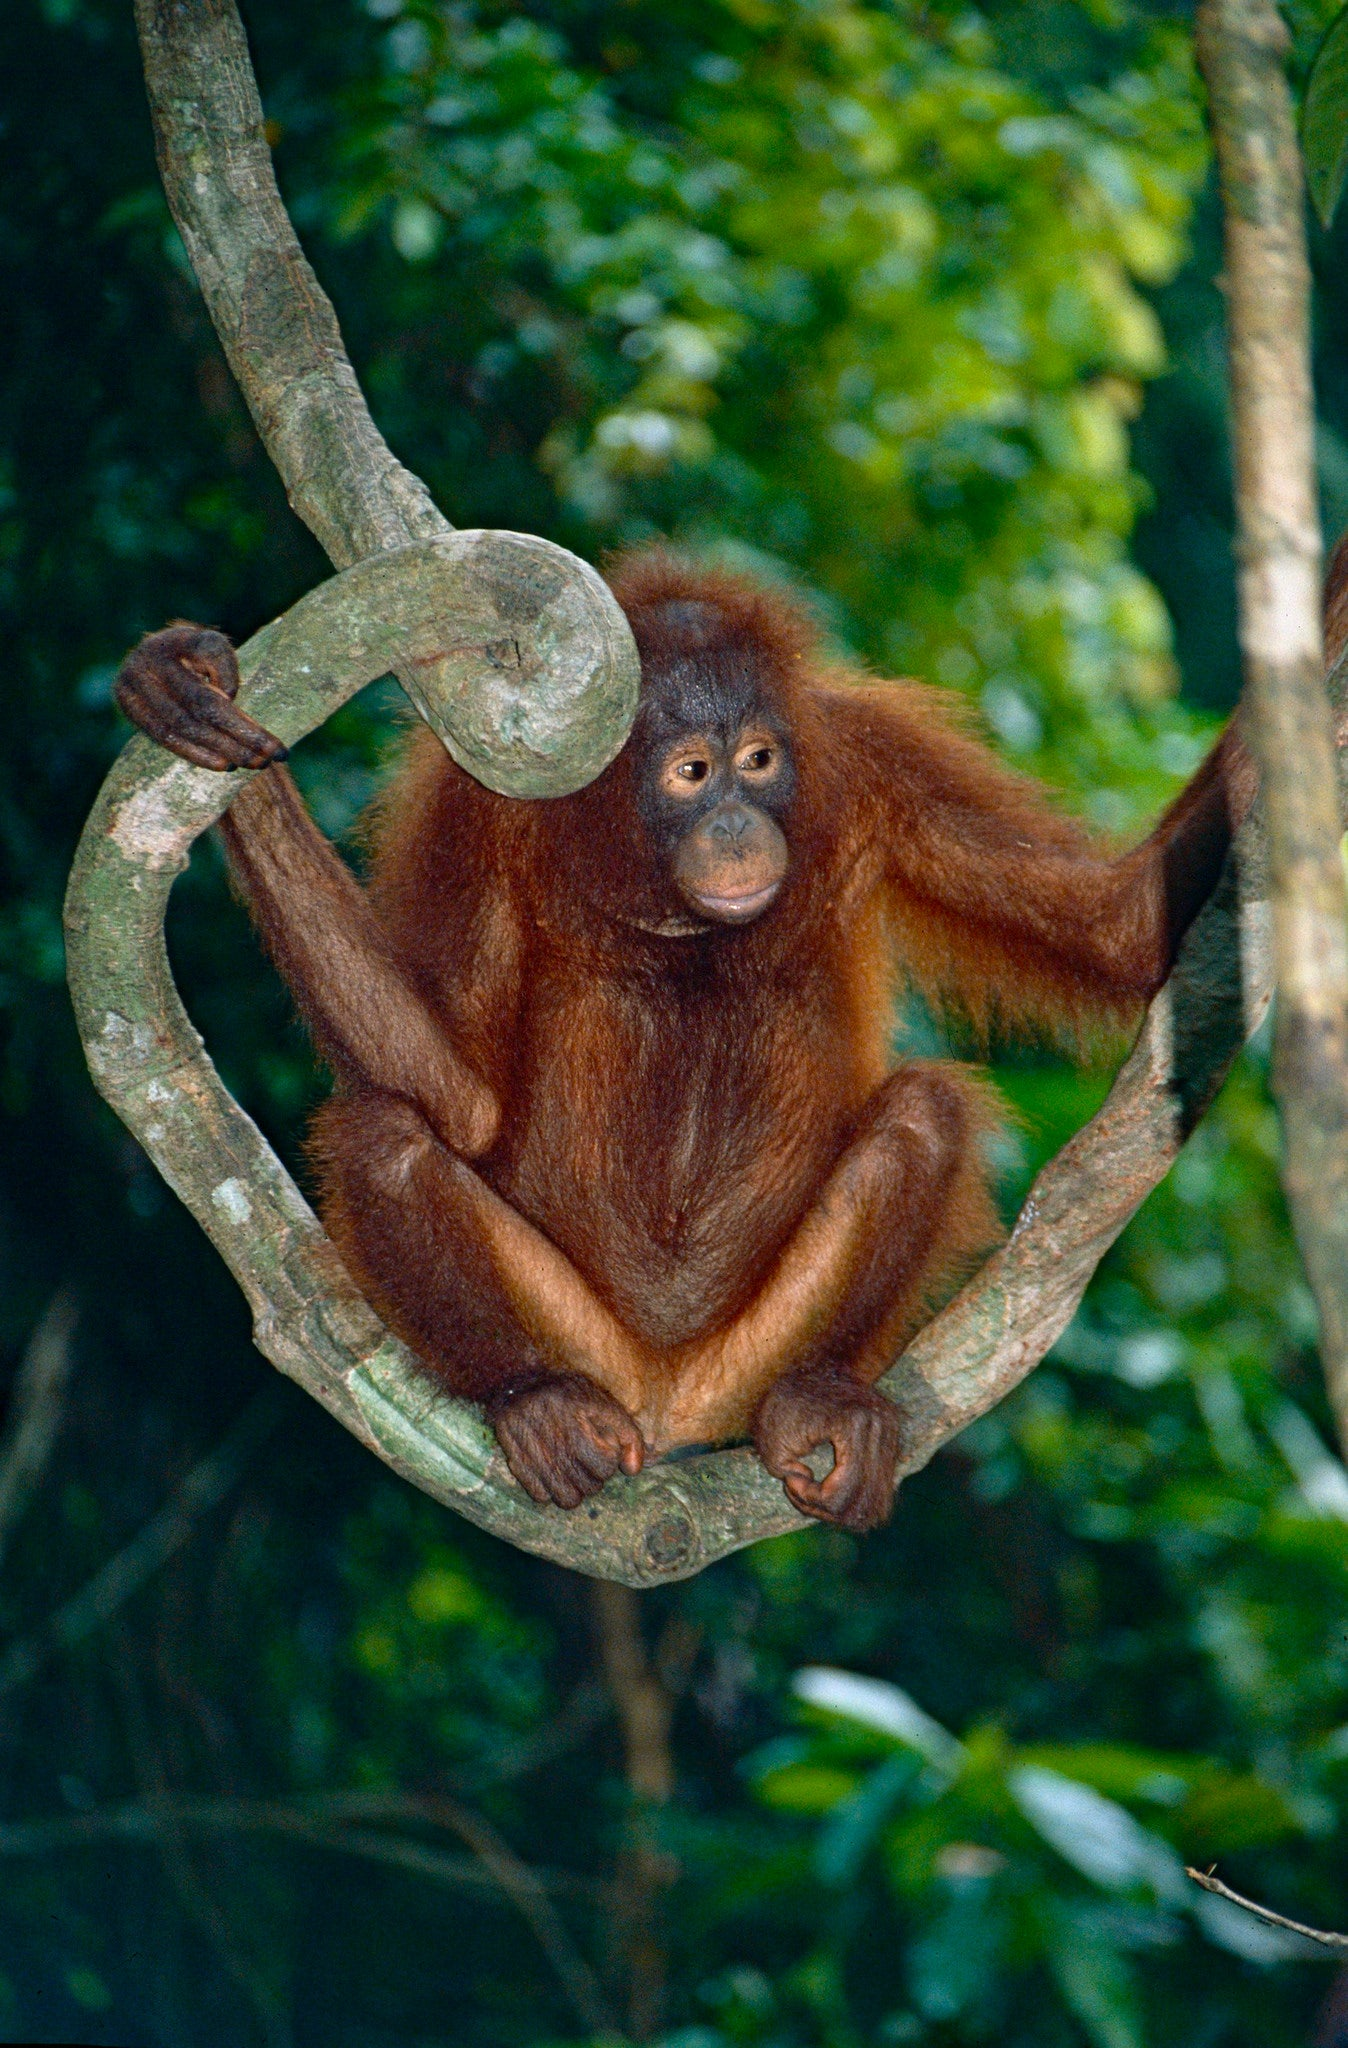 Image of: Palm Oil Bornean Orangutan Now Critically Endangered Scientific American Blogs Bornean Orangutan Now Critically Endangered Scientific American